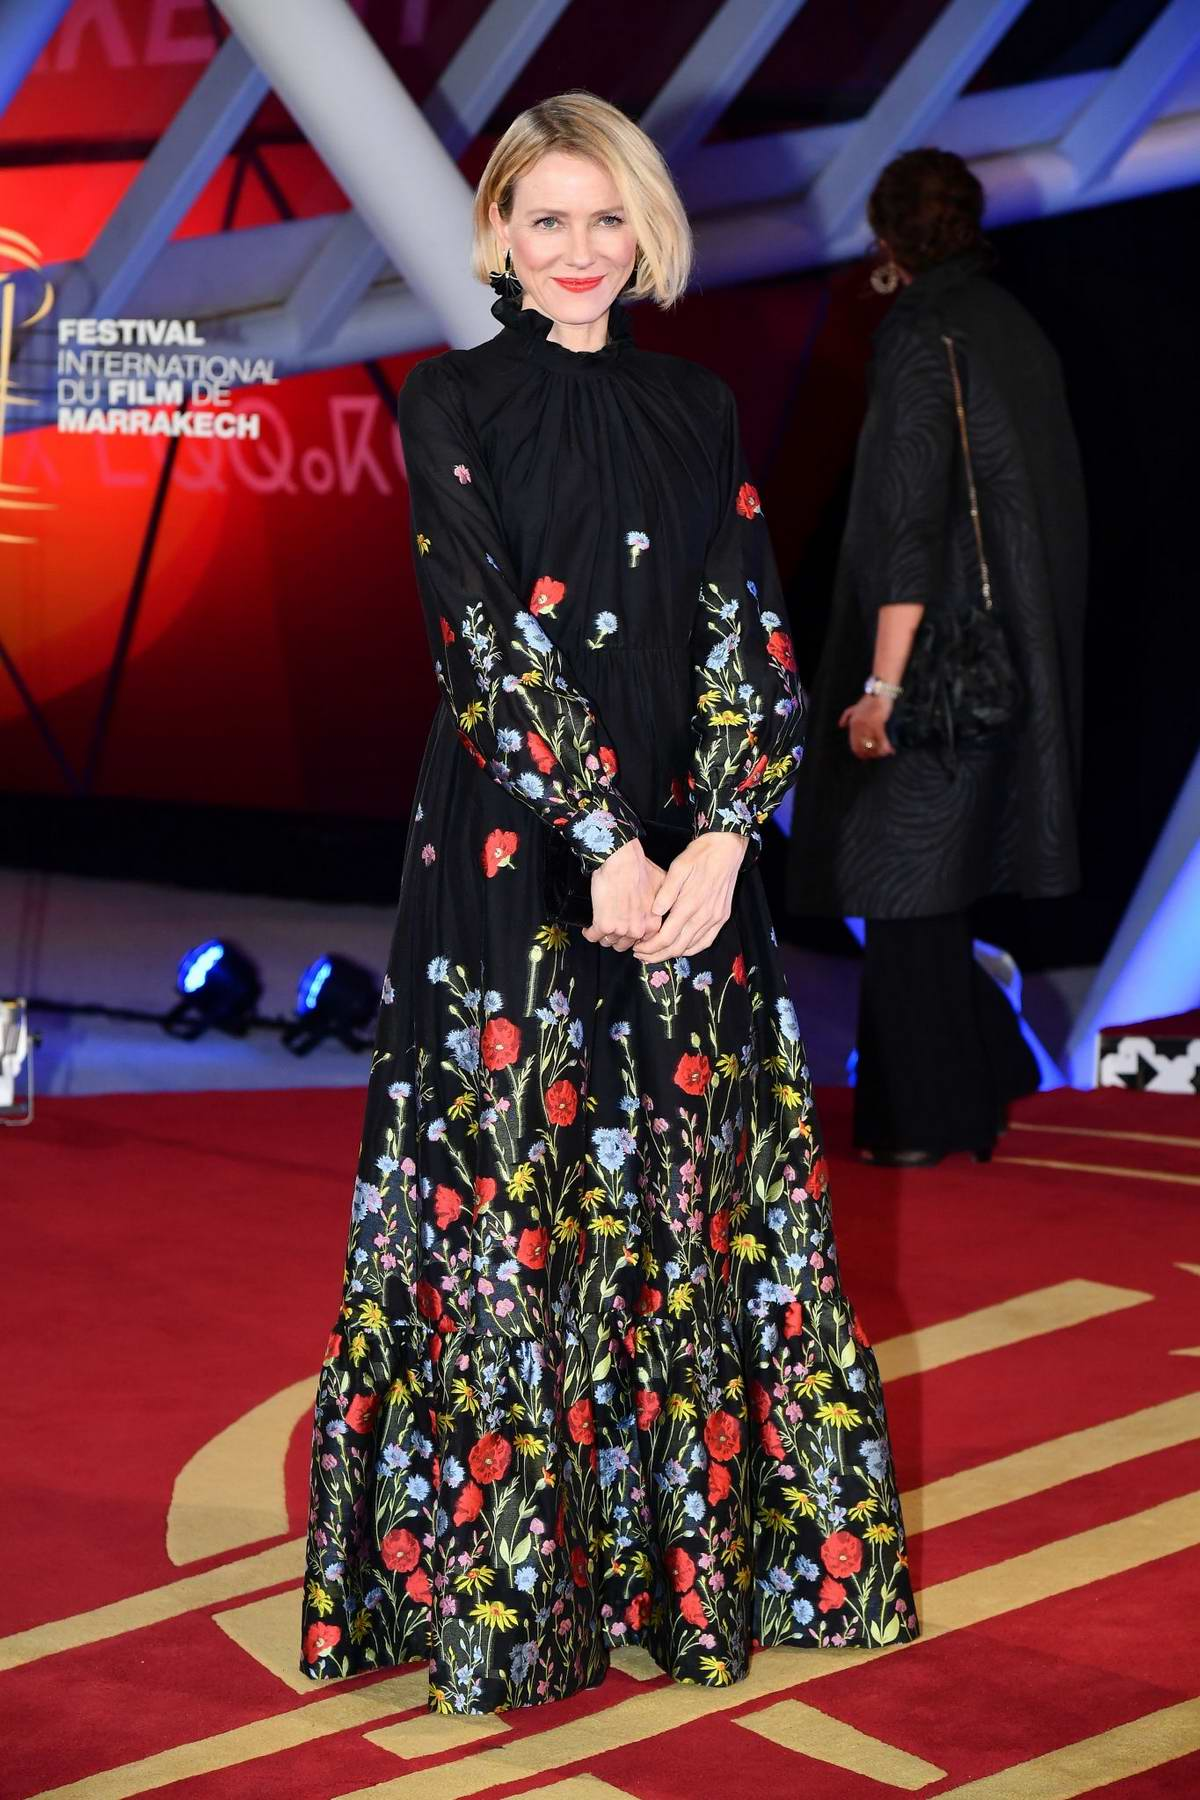 Naomi Watts attends the 18th Marrakech International Film Festival Opening Ceremony in Marrakesh, Morocco